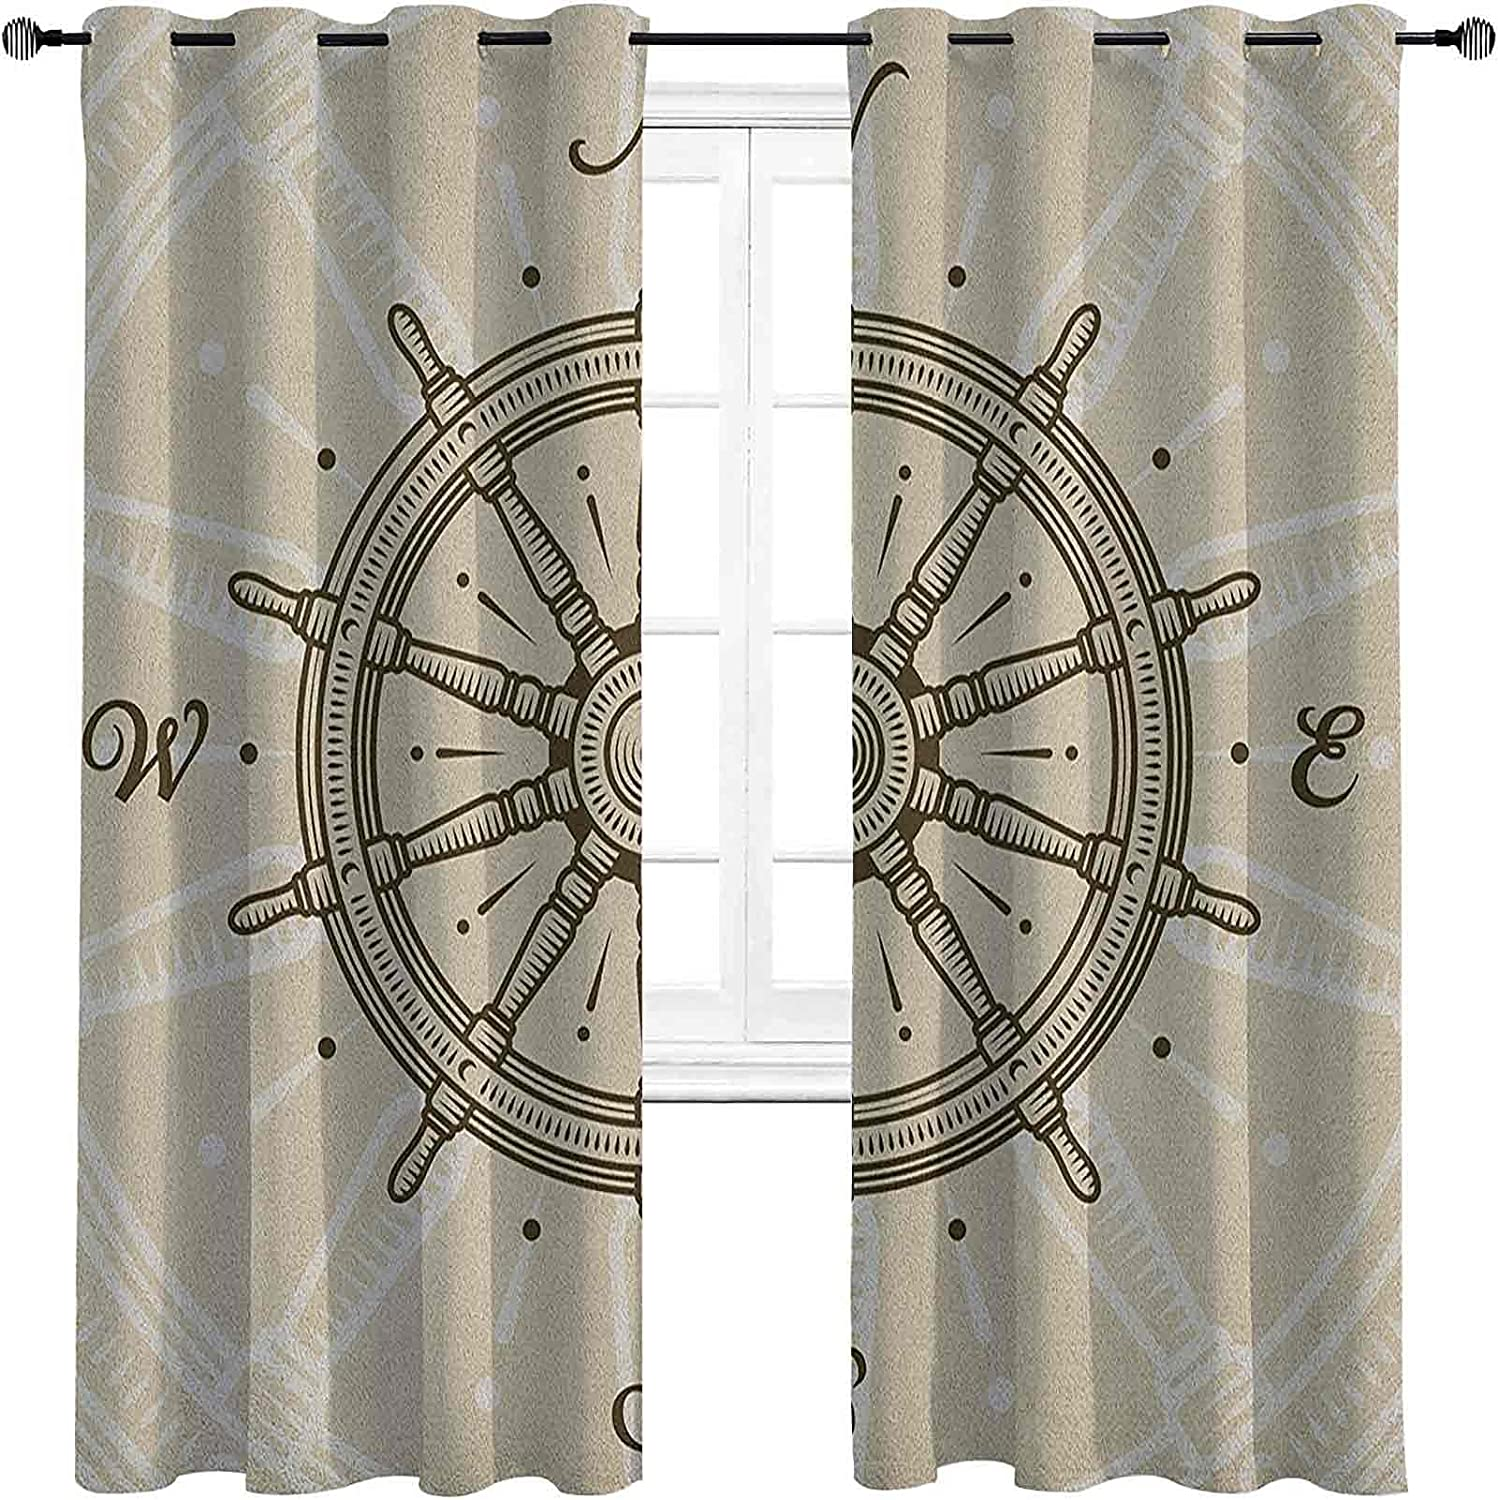 shop Ships Wheel Blackout Curtains - Limited time trial price Retro Gasket Wh Insulation Ship